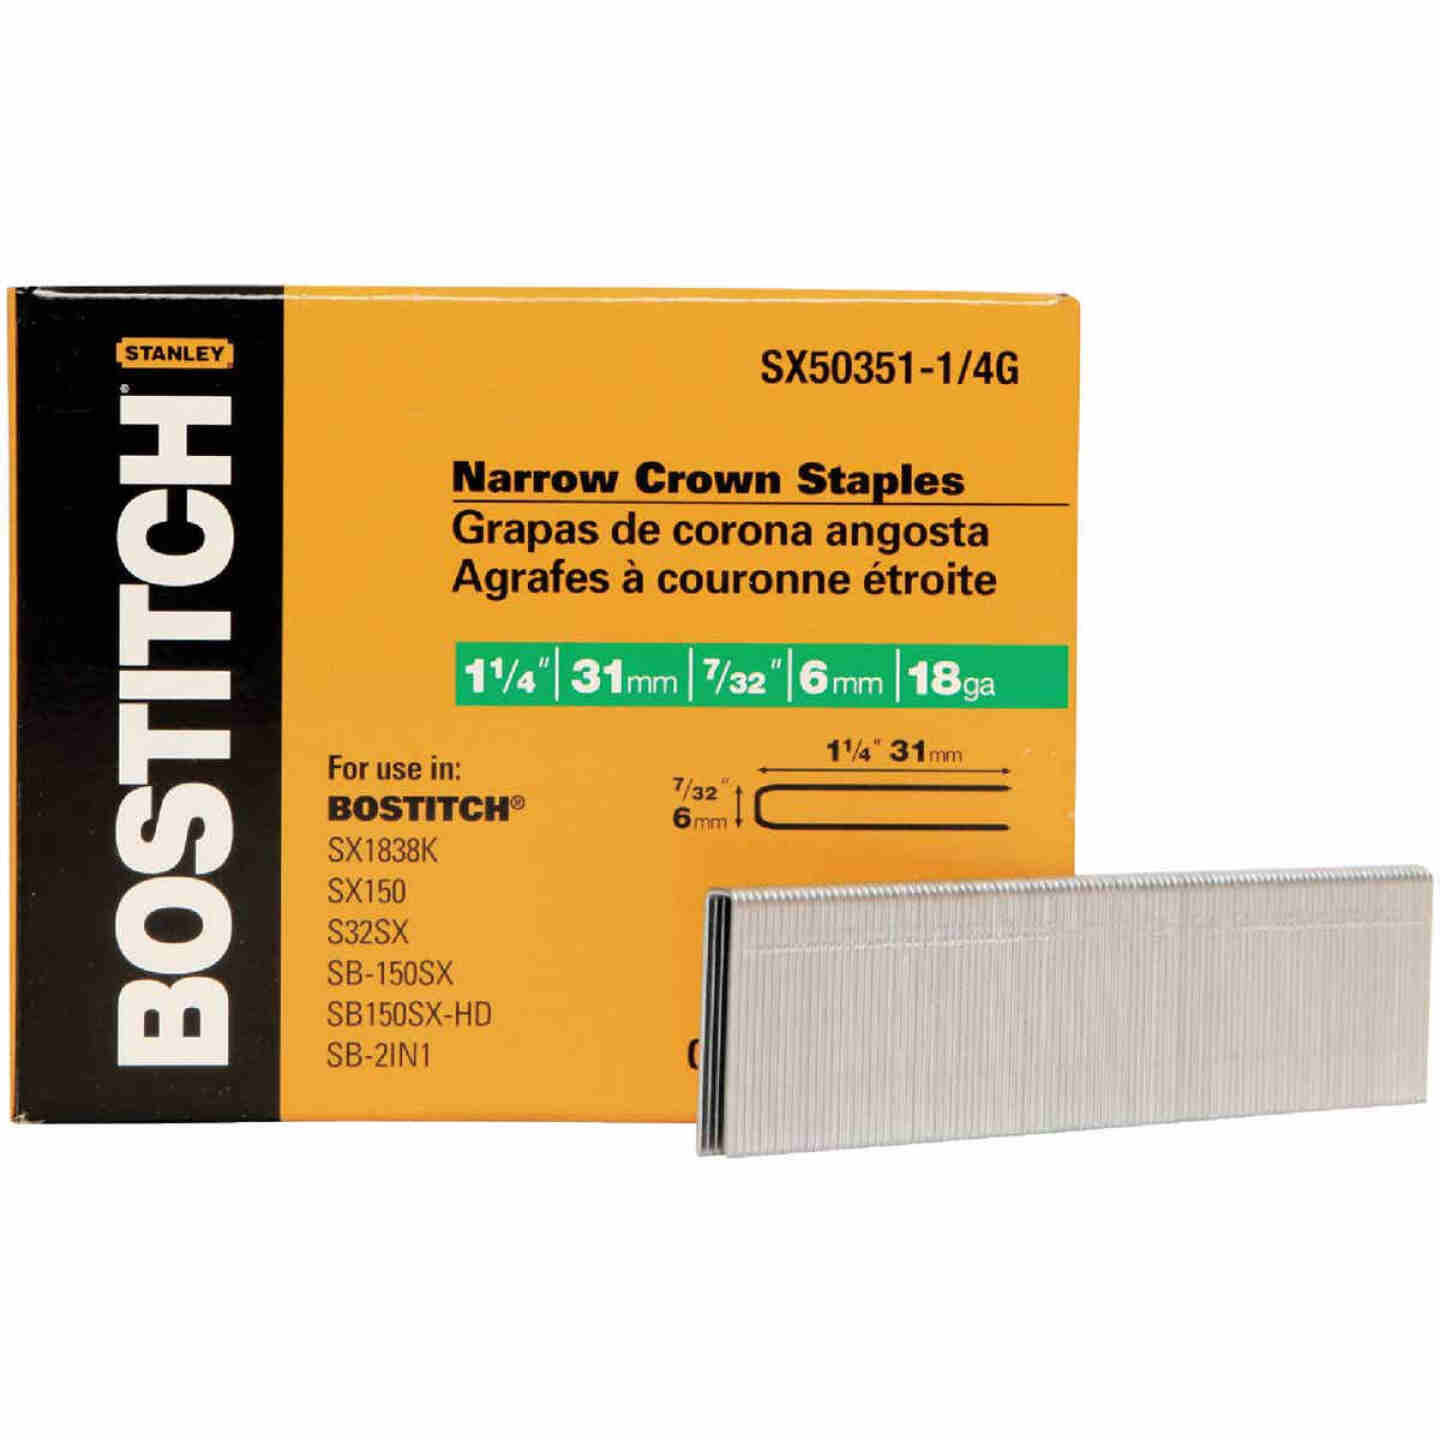 Bostitch 18-Gauge Galvanized Narrow Crown Finish Staple, 7/32 In. x 1-1/4 In. (3000 Ct.) Image 1